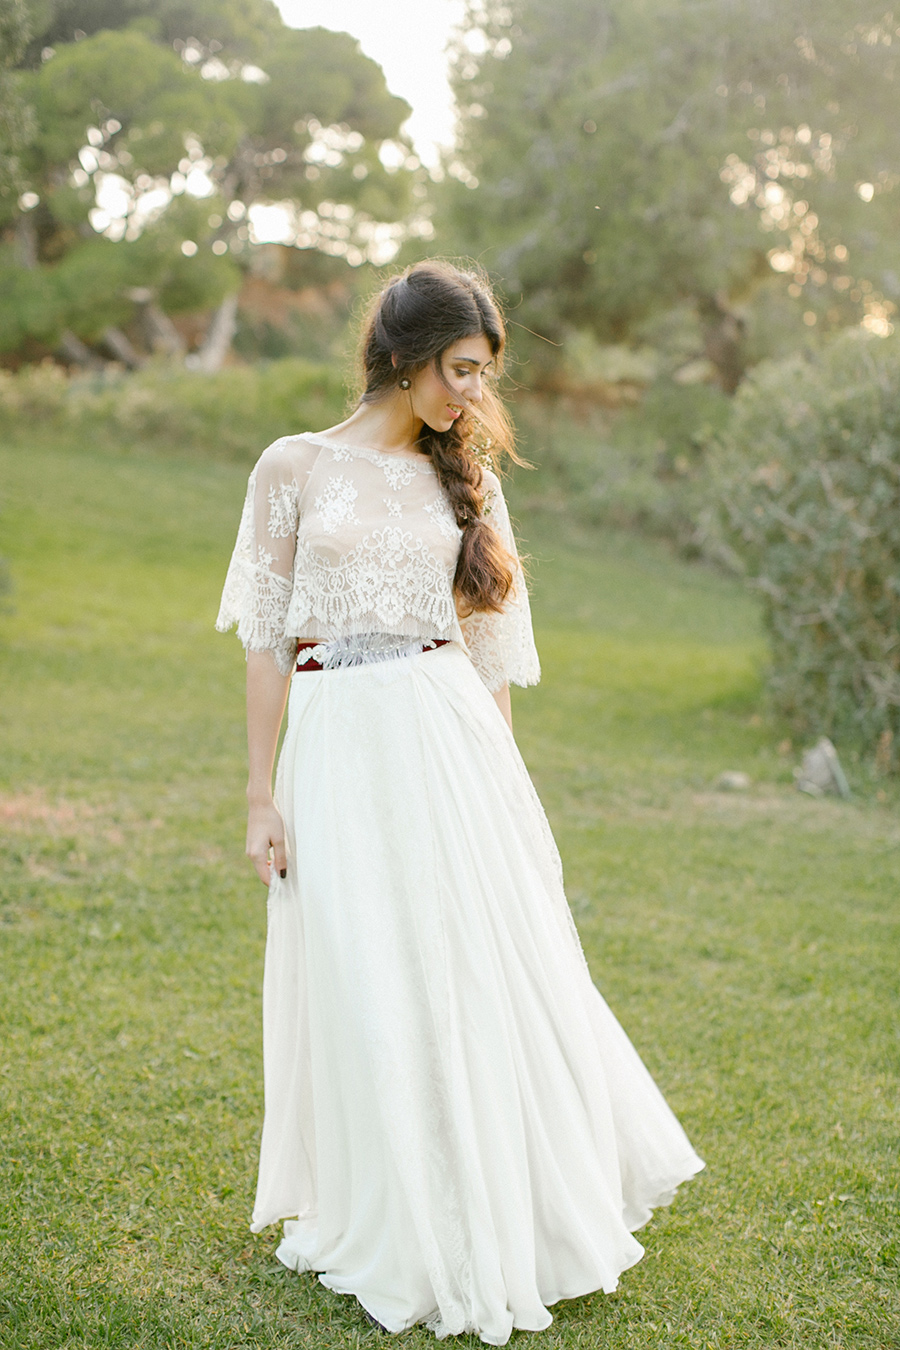 Greece Inspired Wedding Dress with French Chantilly lace / styled shoot coordinated by Love 4 Wed / photo by Anna Roussos Photography